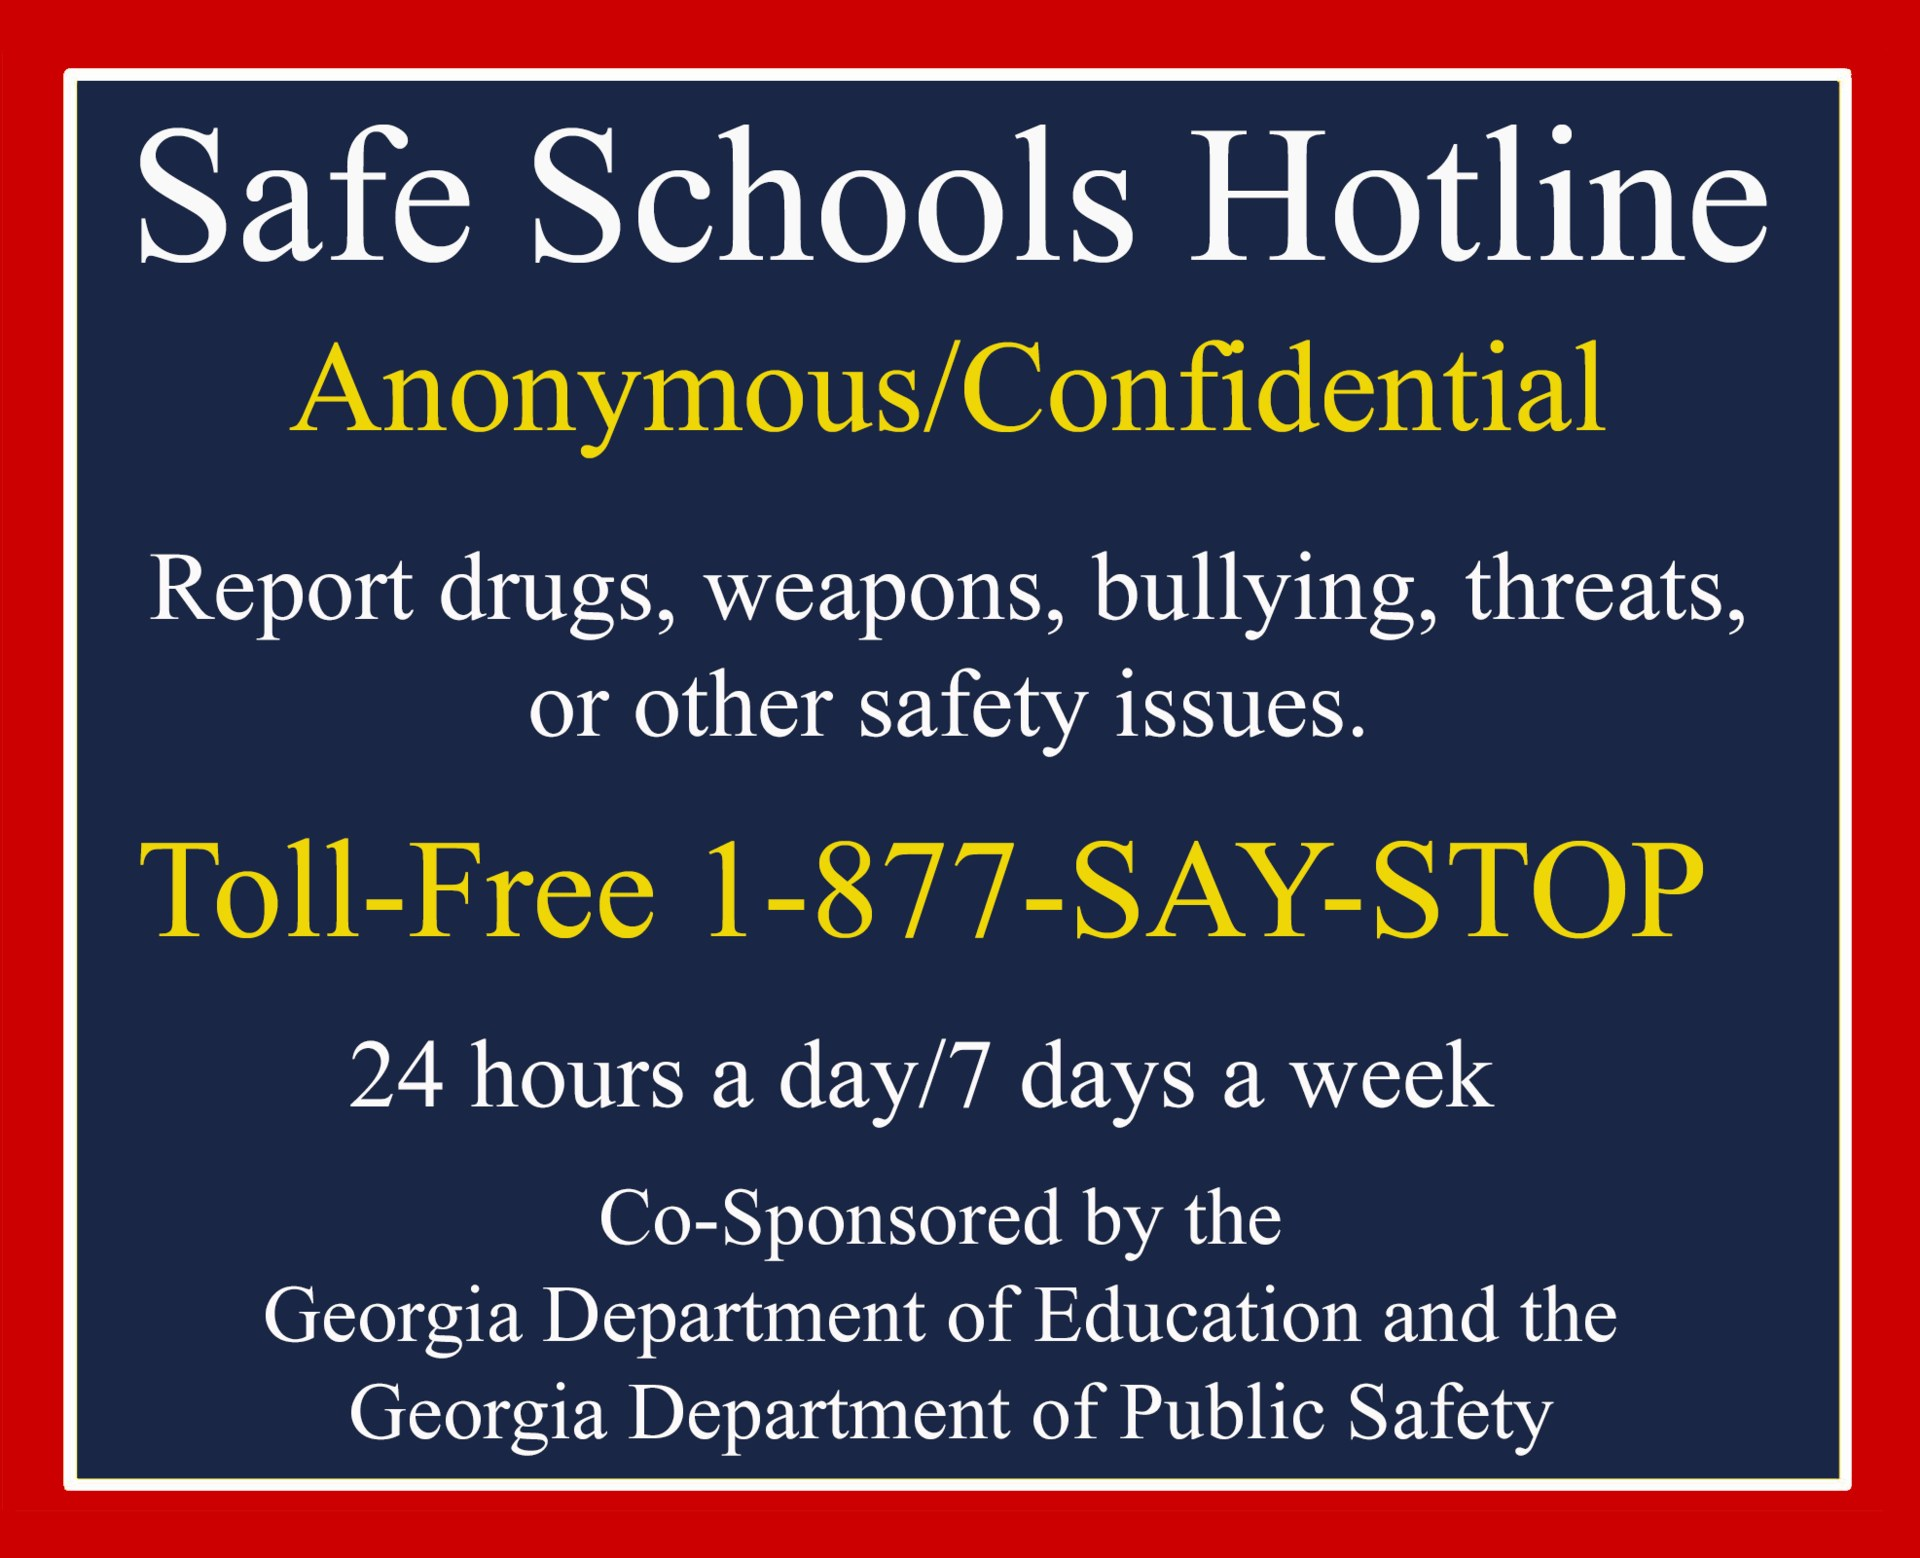 School safety hotline poster